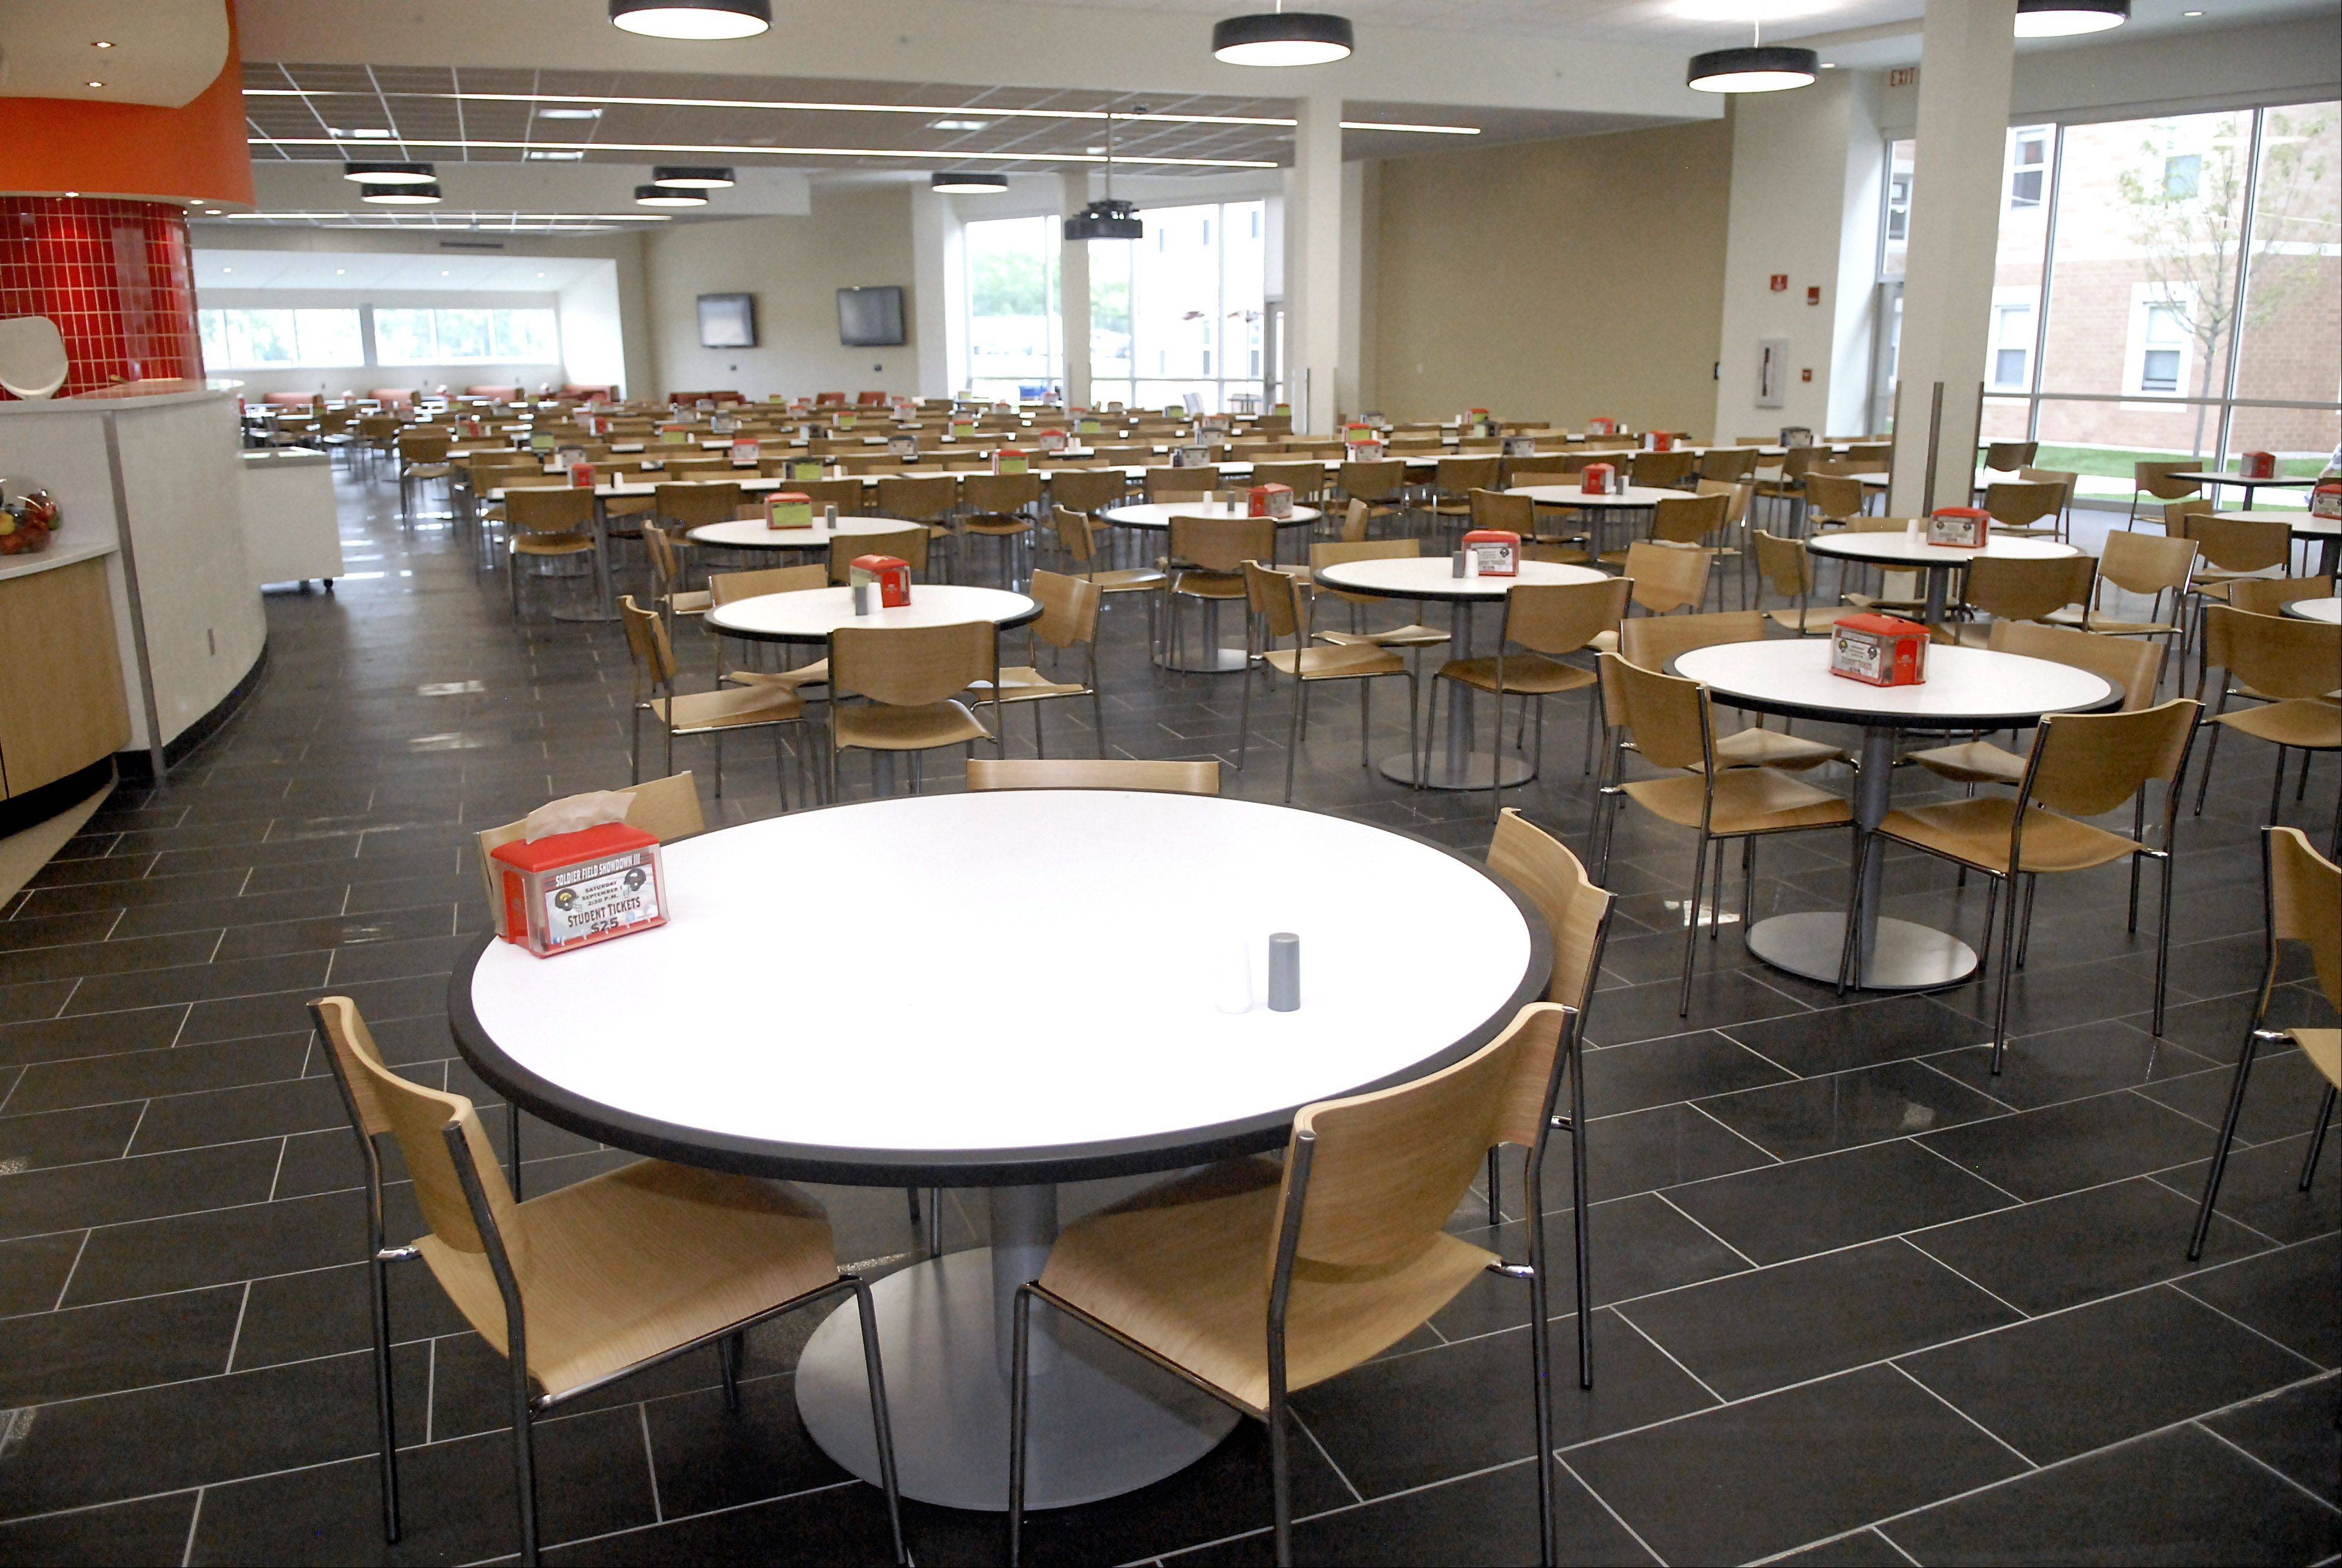 The dining area of the cafeteria in the New Residence Hall Community Center at Northern Illinois University in DeKalb on Thursday, August 23.